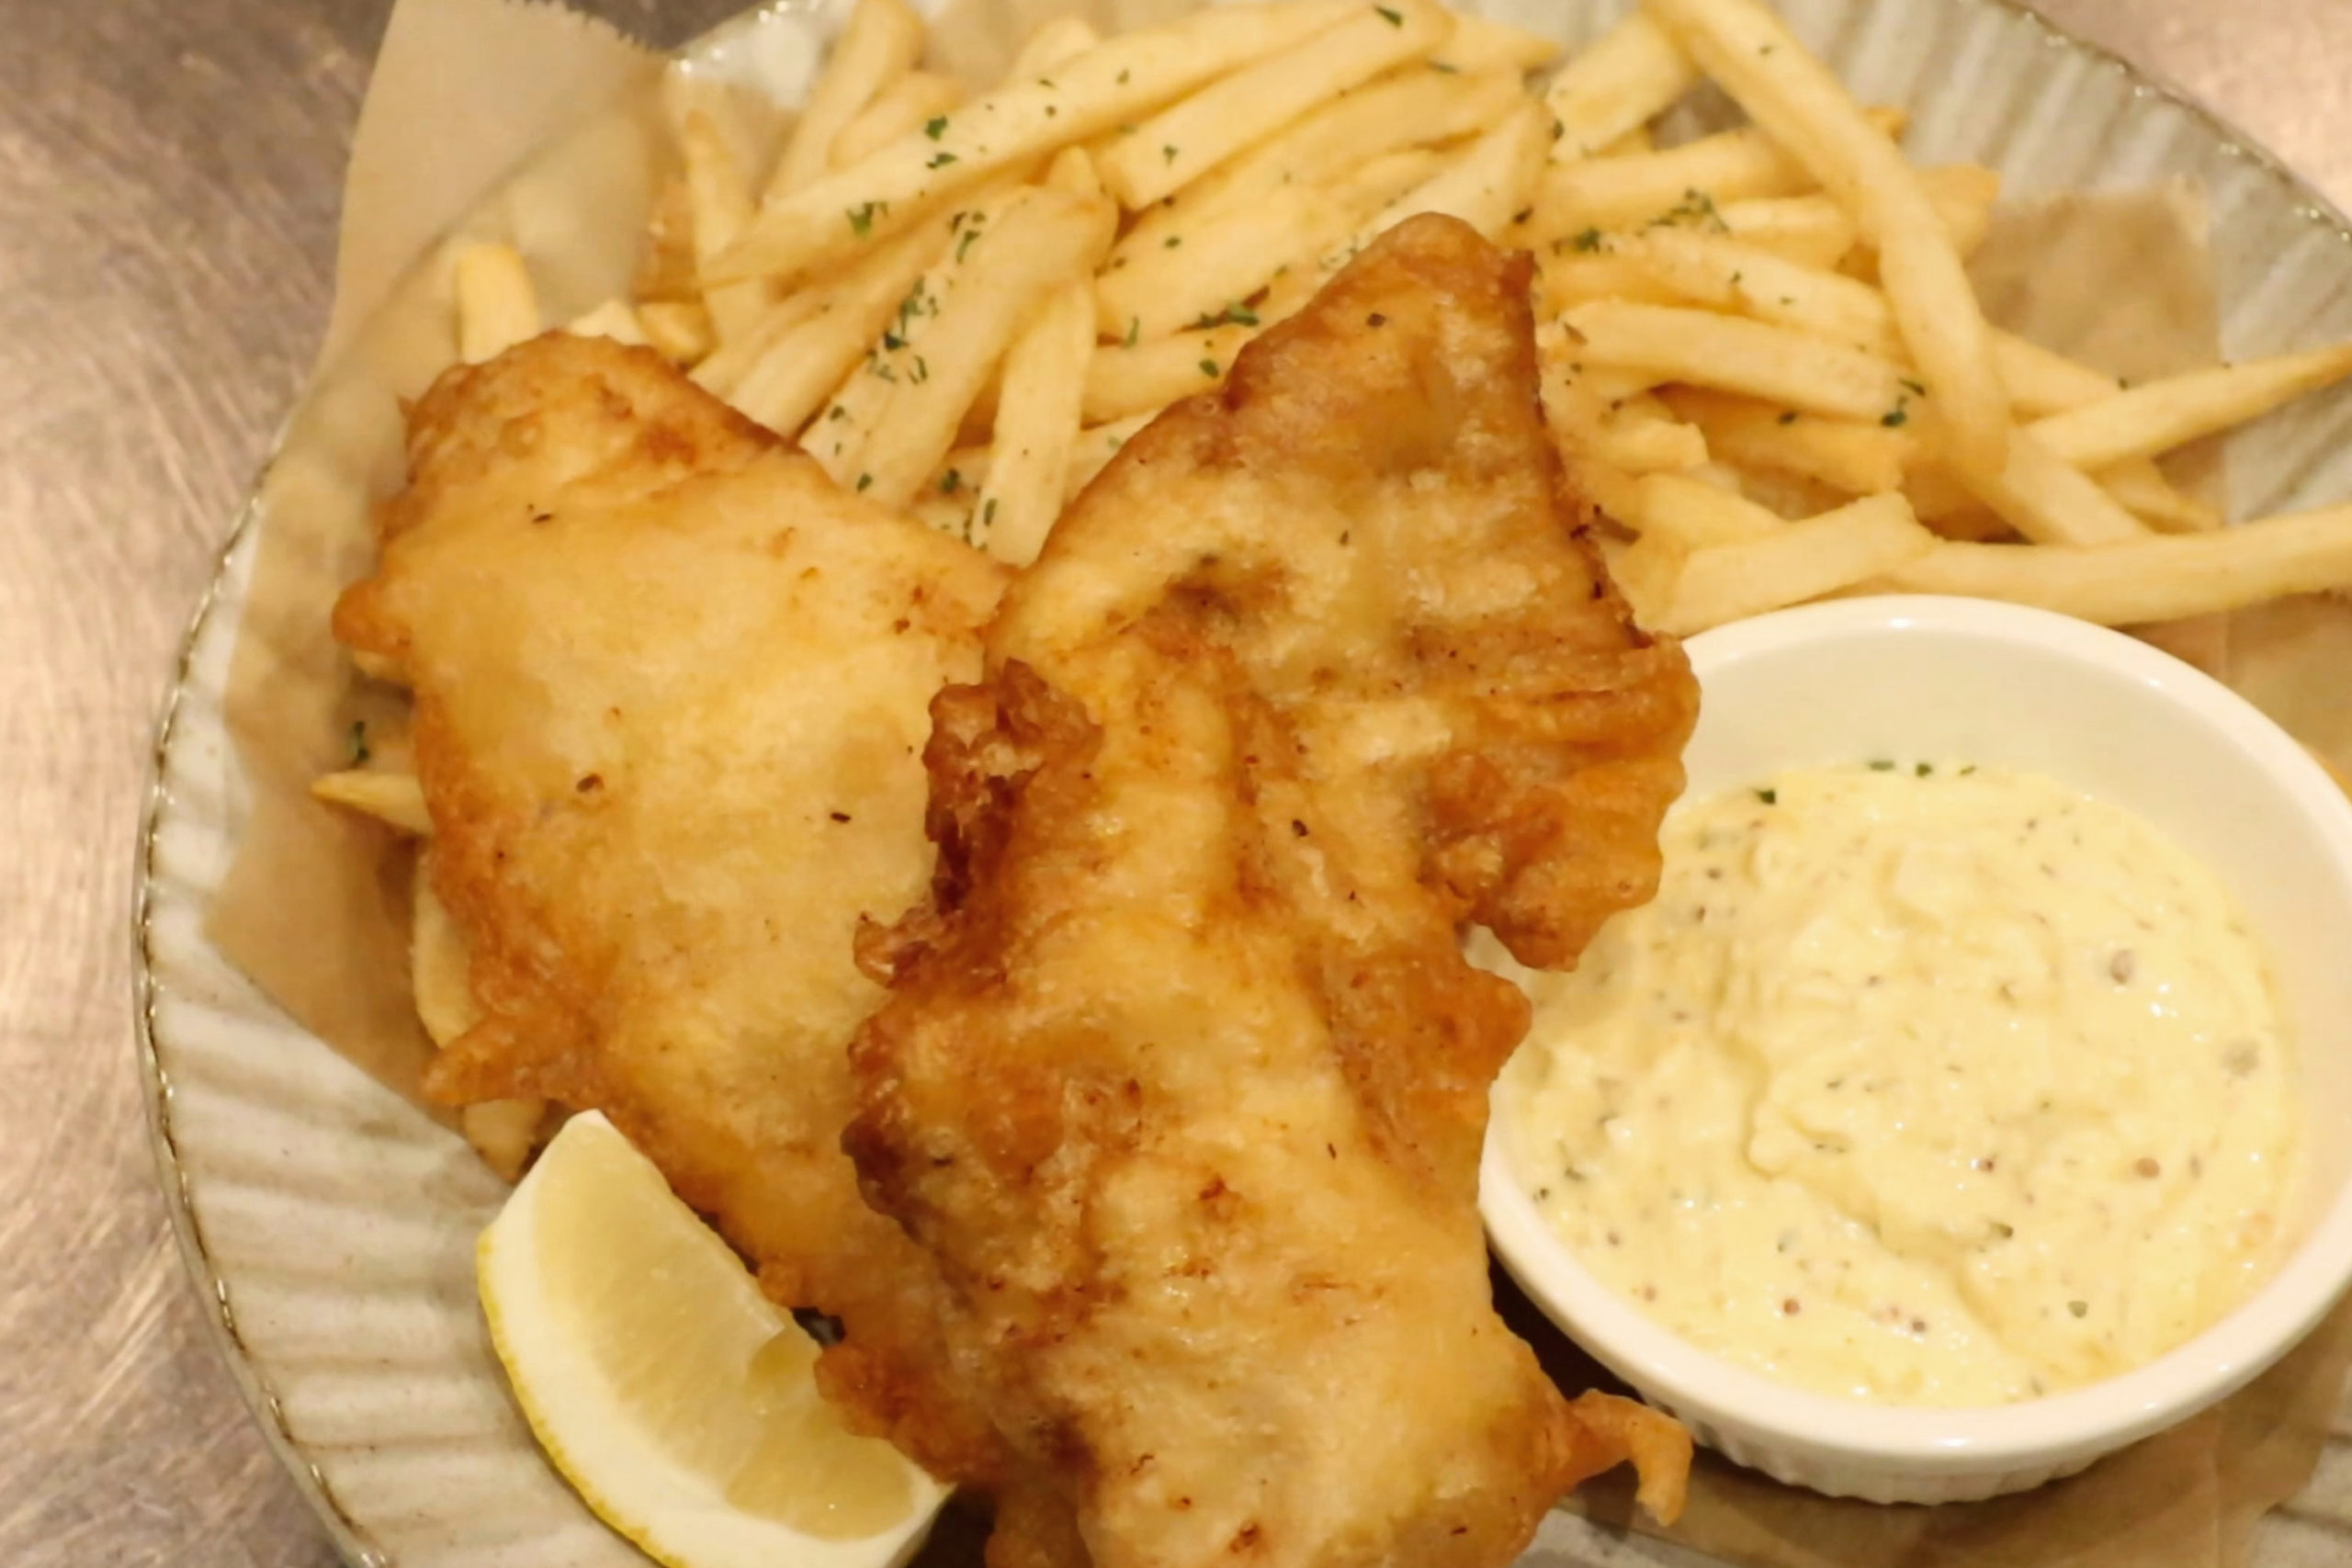 https://www.milkbar.jp/wp/wp-content/uploads/2020/08/food_fish-chips-scaled.jpg